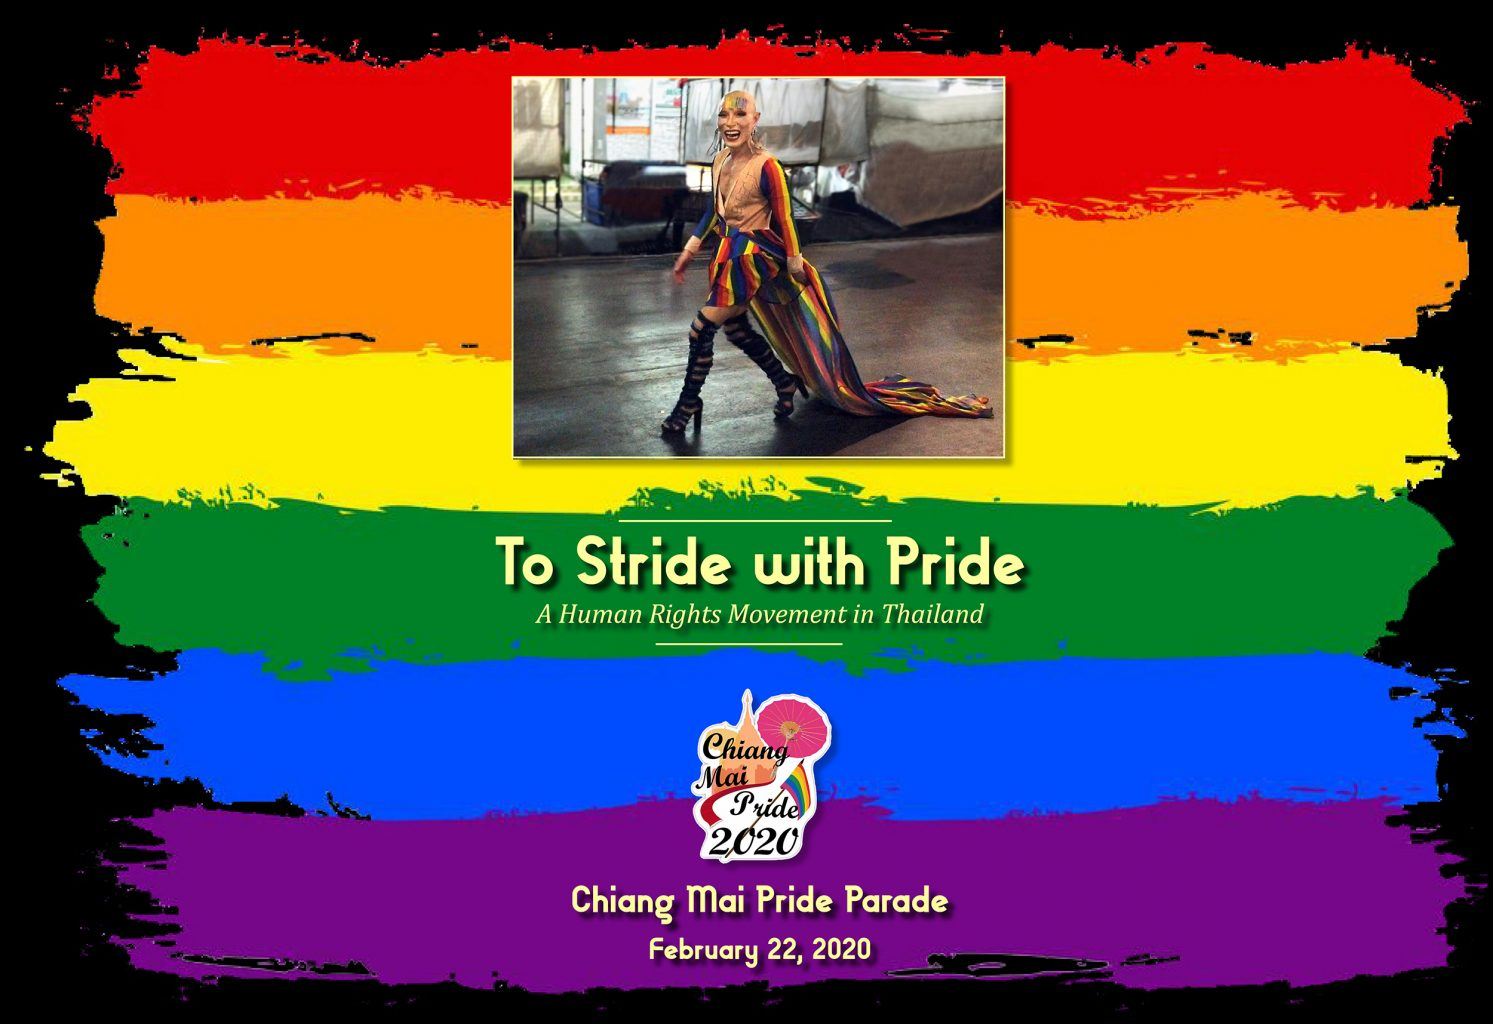 Chiang Mai Pride Parade: A Human Rights Movement in Thailand